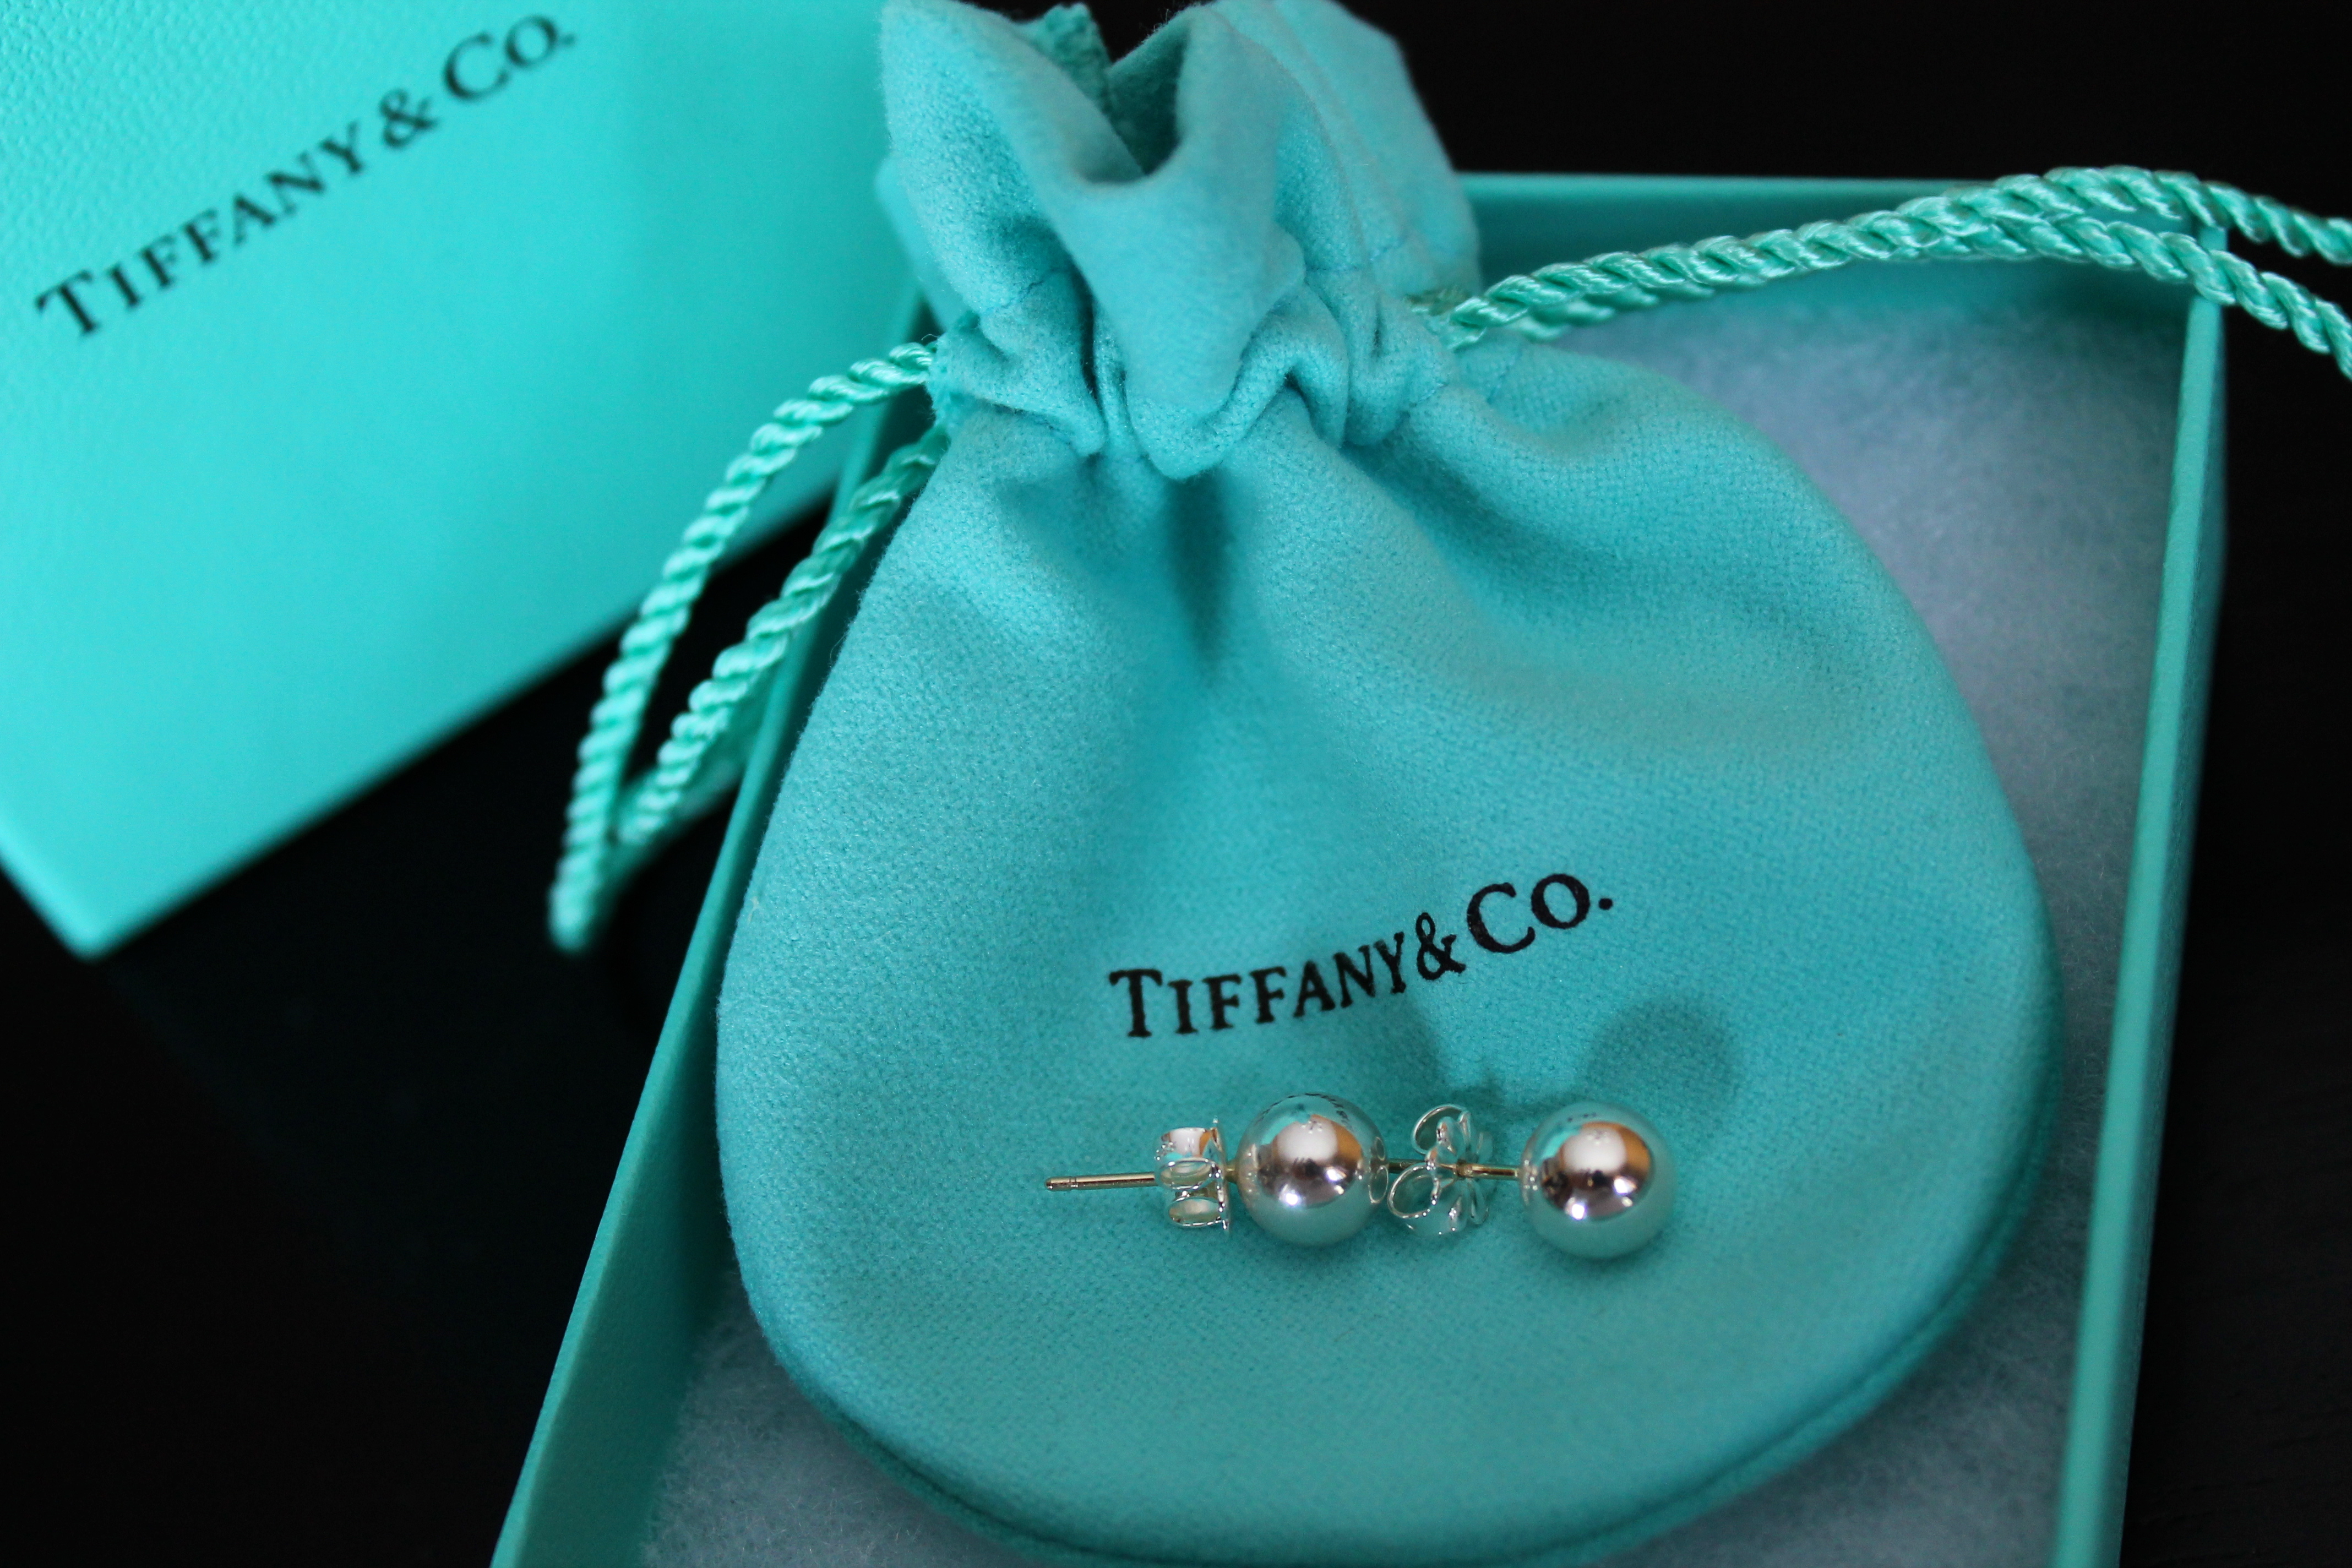 d04407599 ... tiffany and co silver bead earrings. meal plan 14 celebrating with  chocolate ...